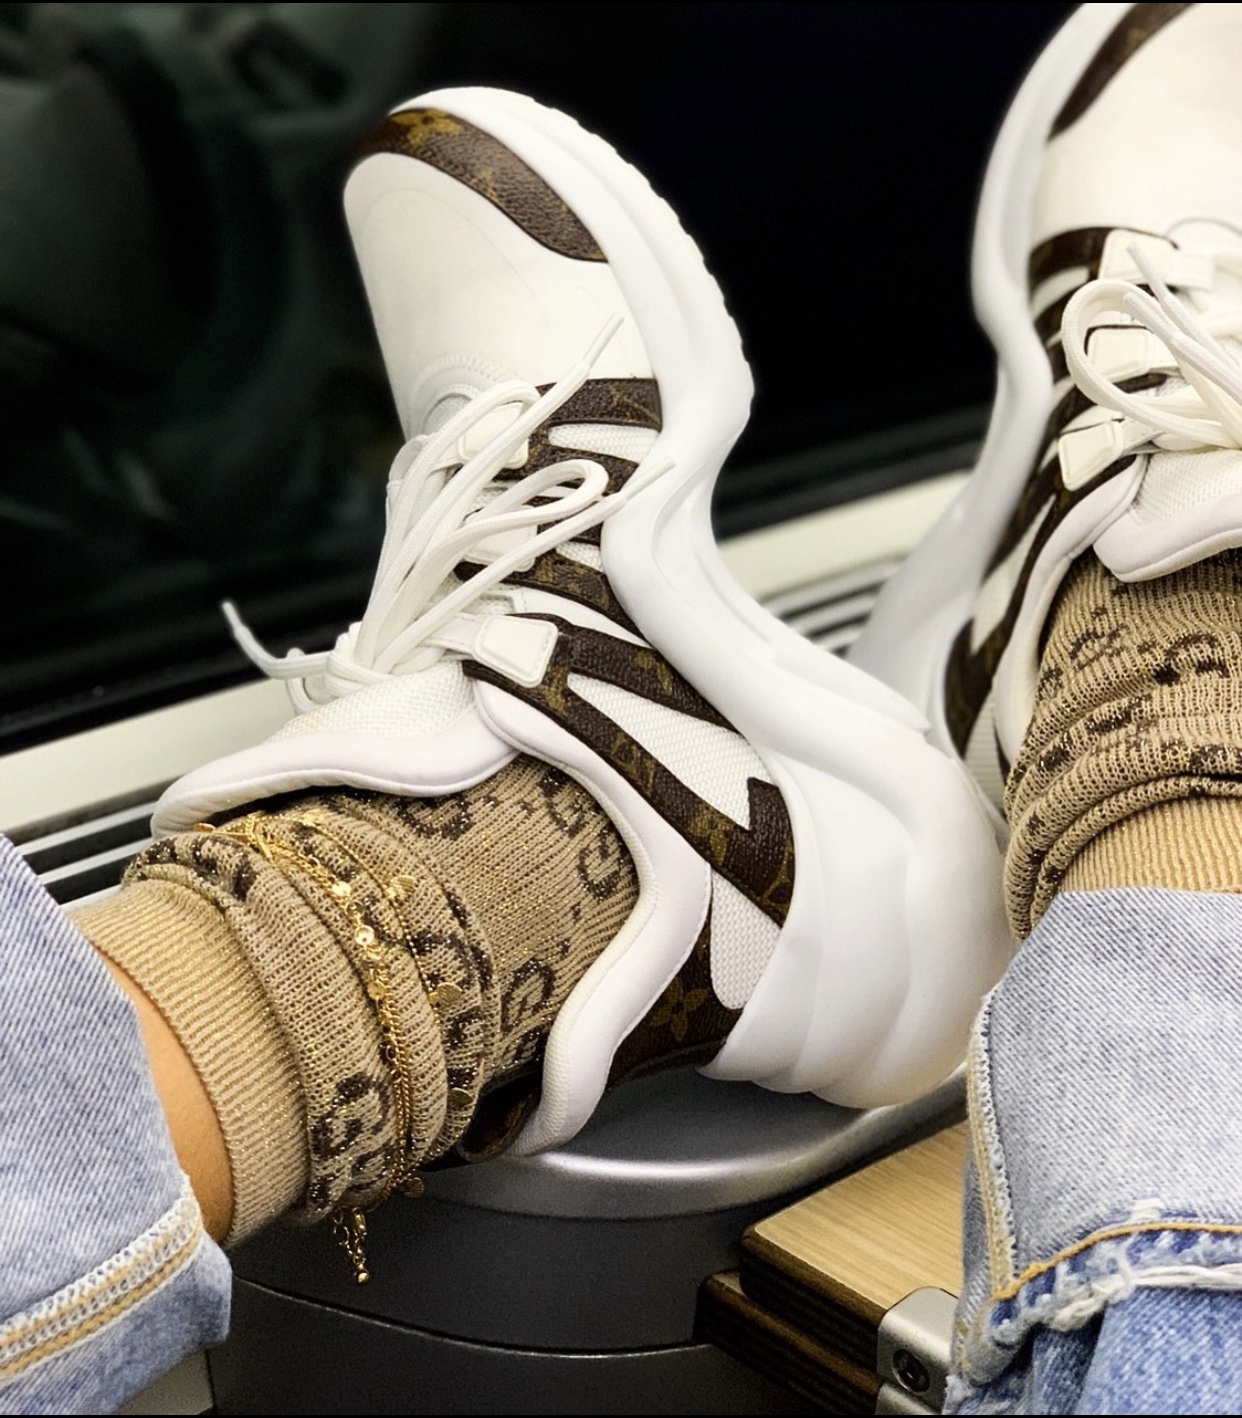 Gucci   Socks  |Louis Vuitton Sneakers| Forever21   Anklets